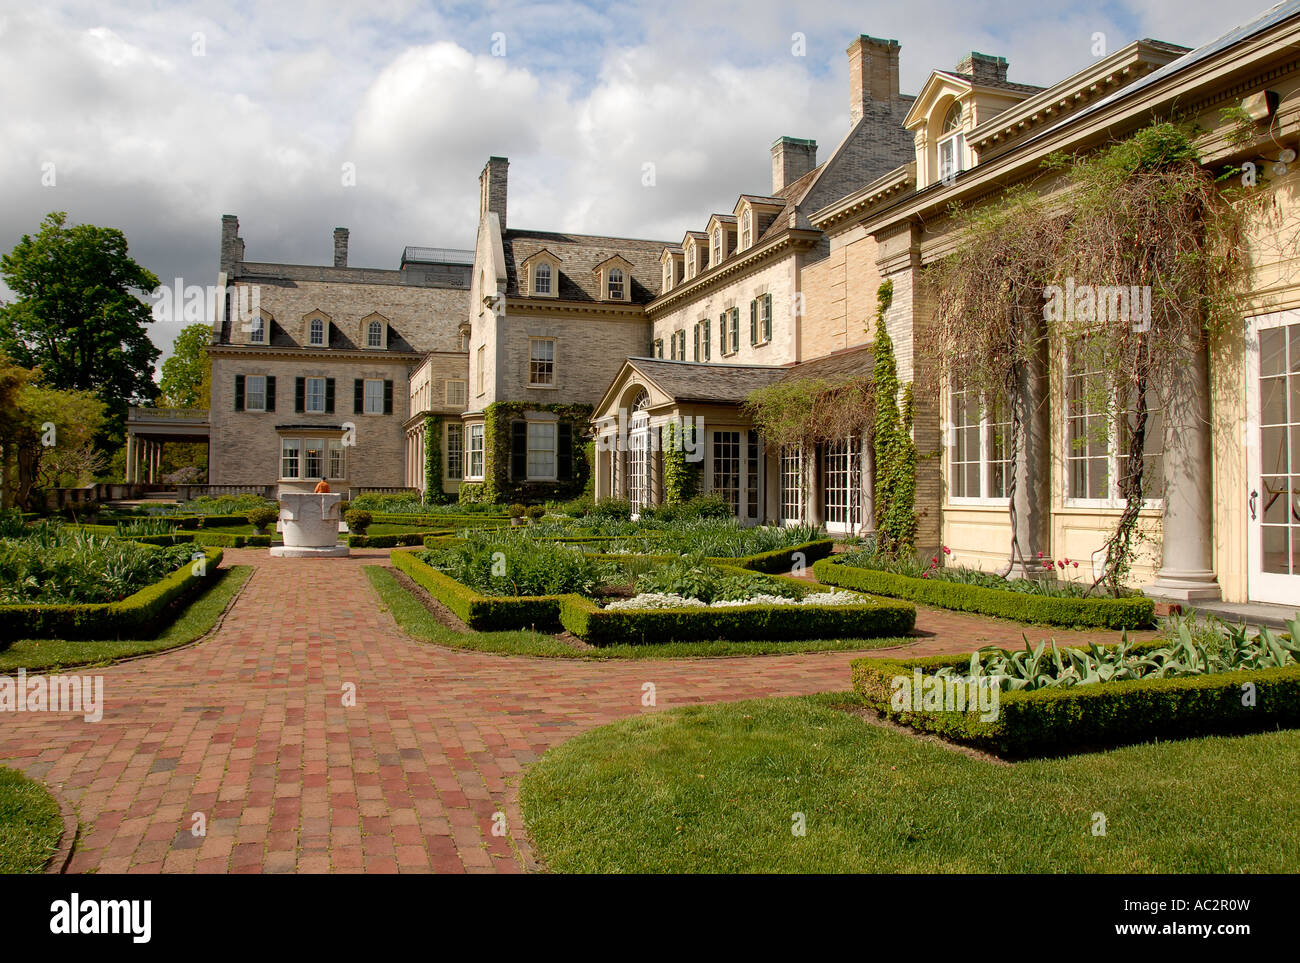 George eastman house garden rochester ny usa stock photo for Rochester house